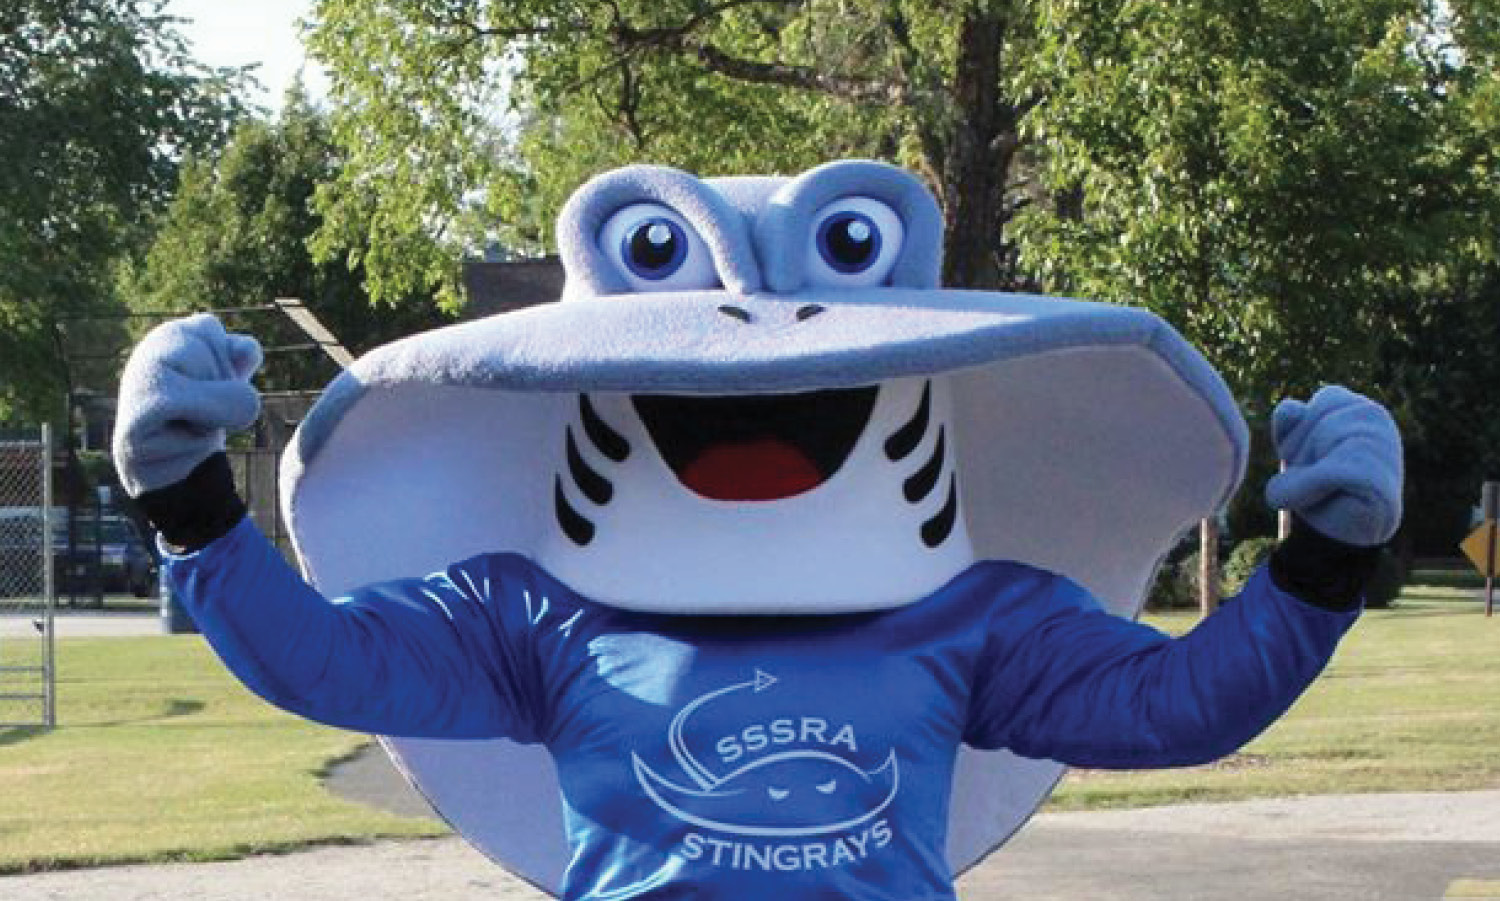 Sammy Stingray mascot poses for a picture in a park.